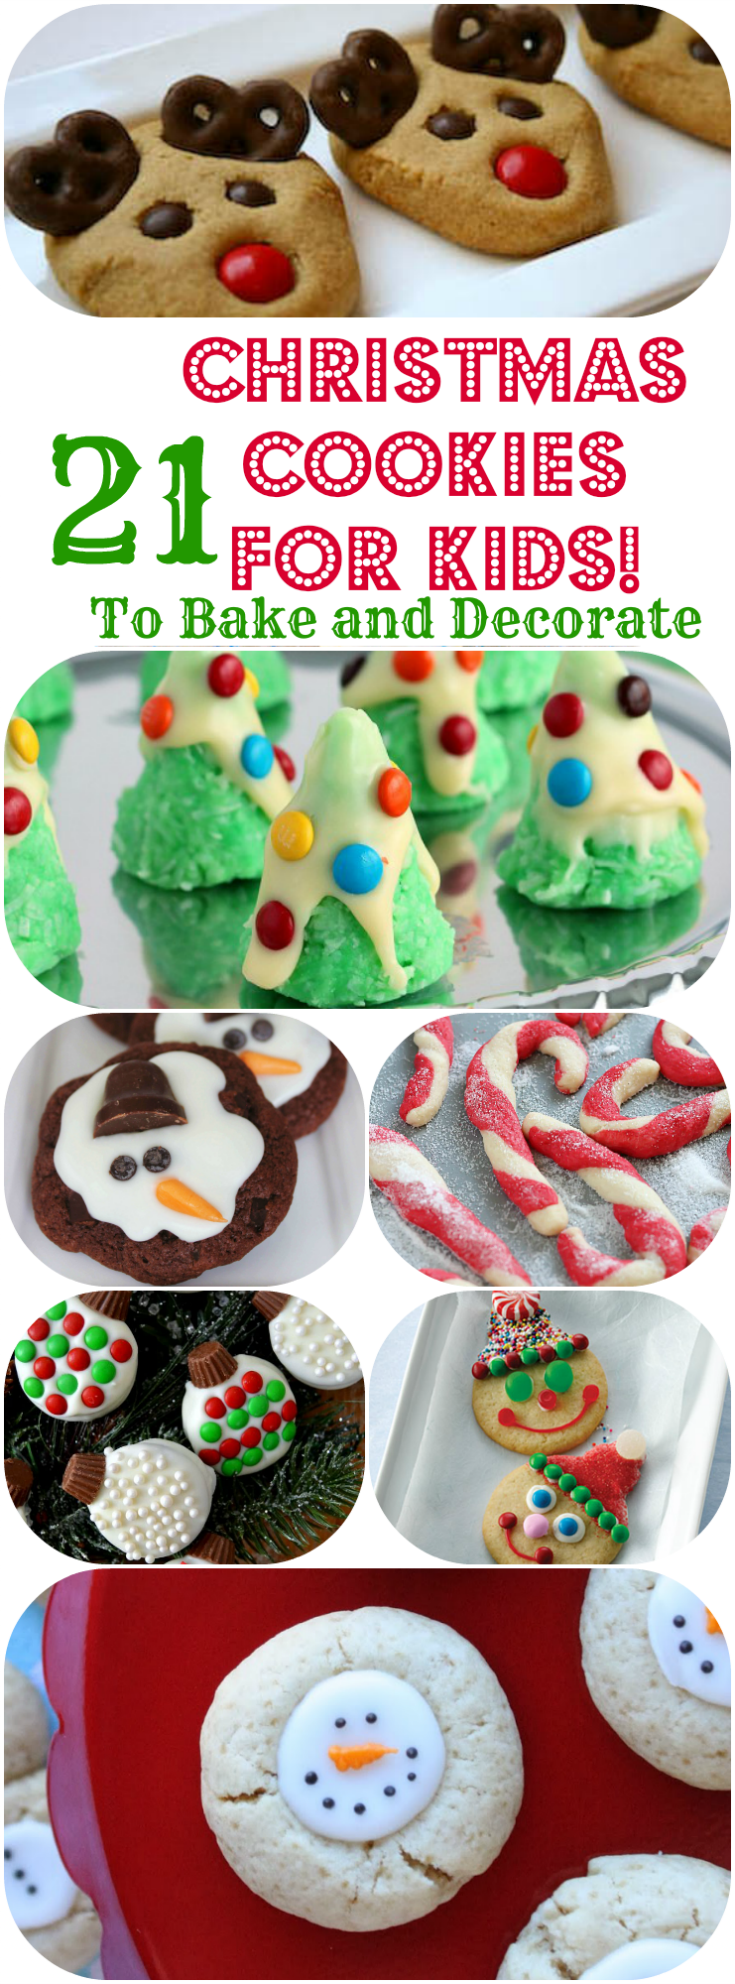 21 Christmas Cookies Kids Can Bake Cookies And Bars Christmas